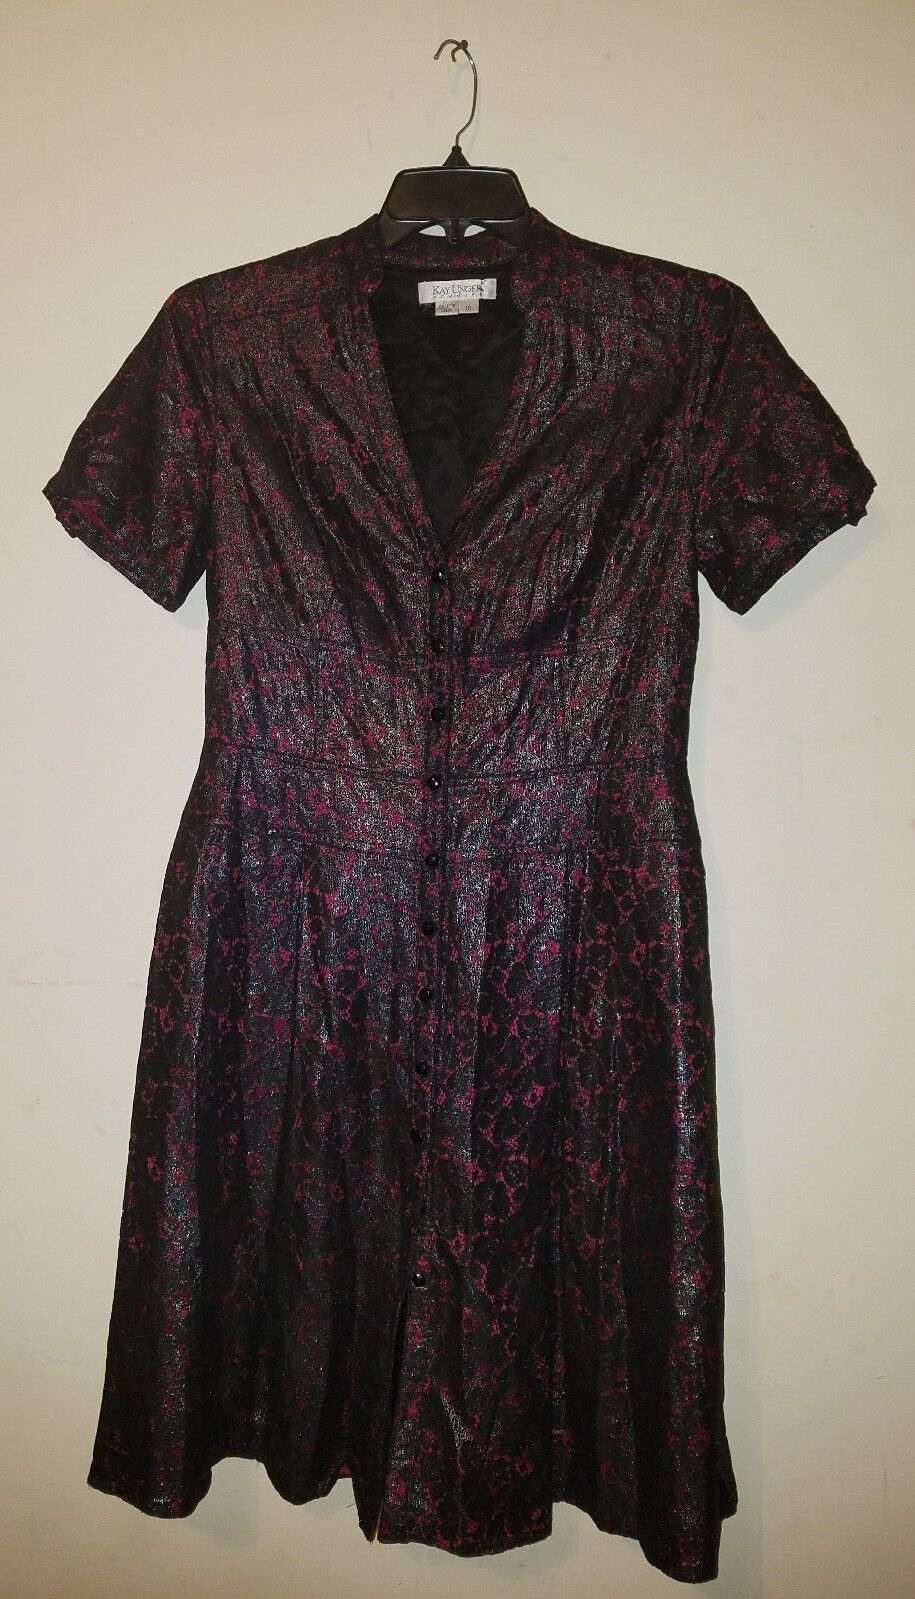 Kay Unger New York  Fit and Flare schwarz rot Lace Button-down Shirt Dress Größe 12